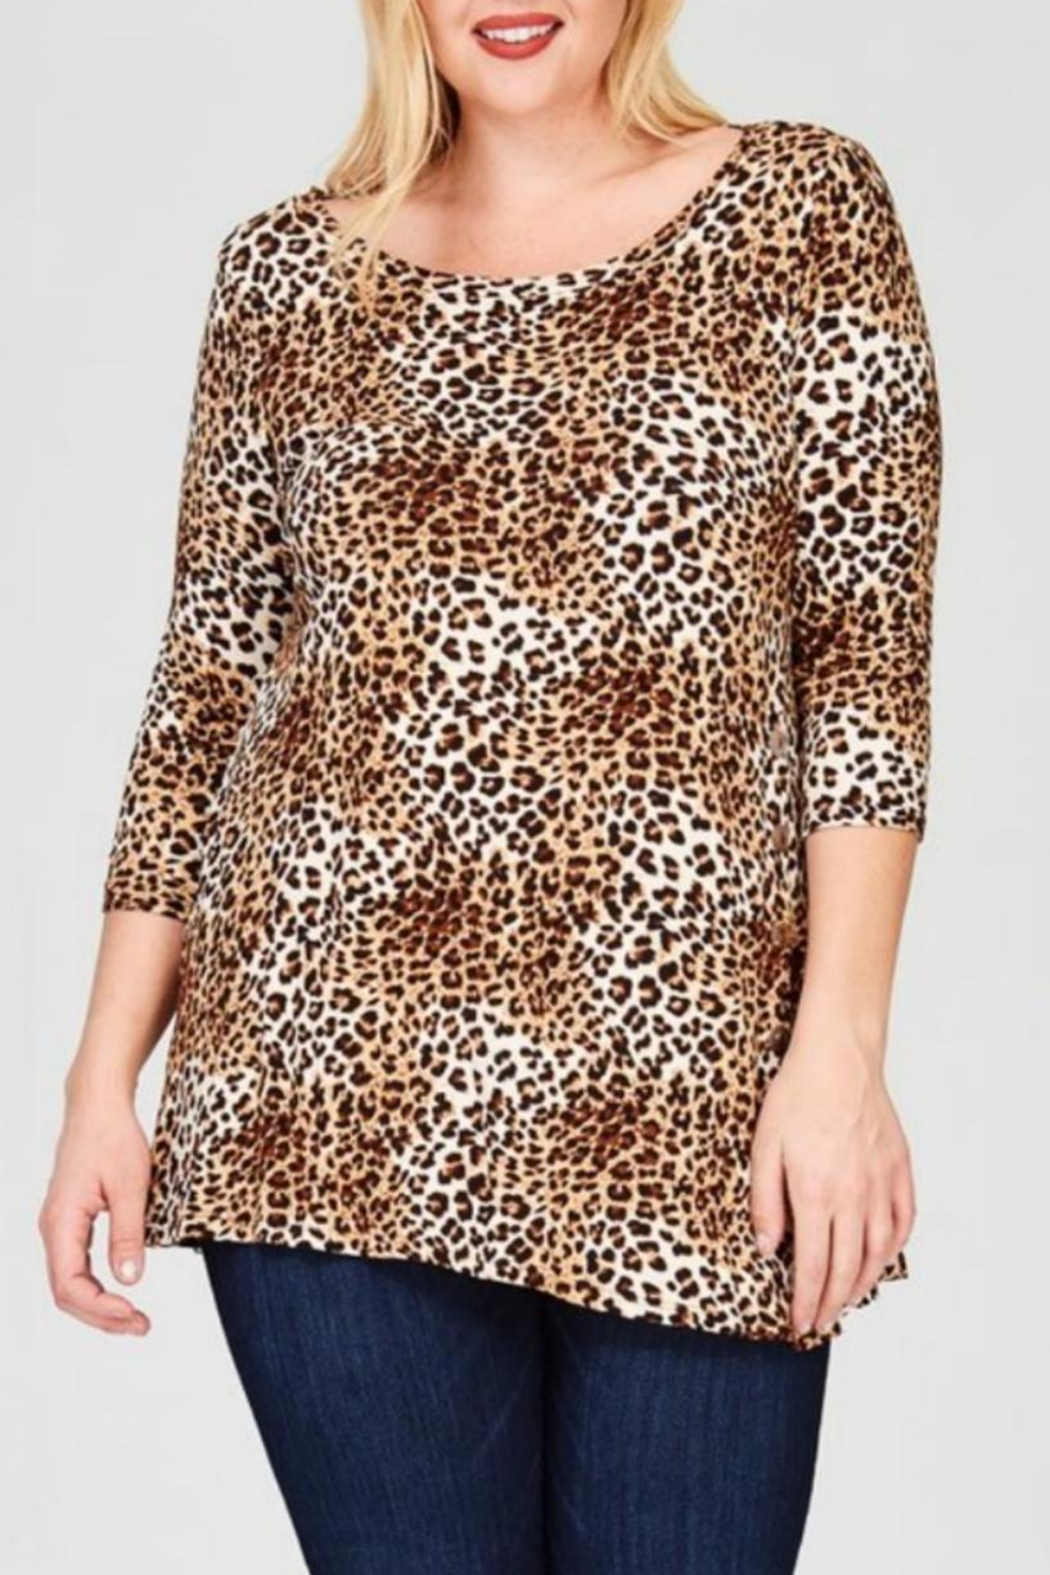 a01f95562b2 Janette Plus Leopard Print Tunic from Kansas by Seirer s Clothing ...